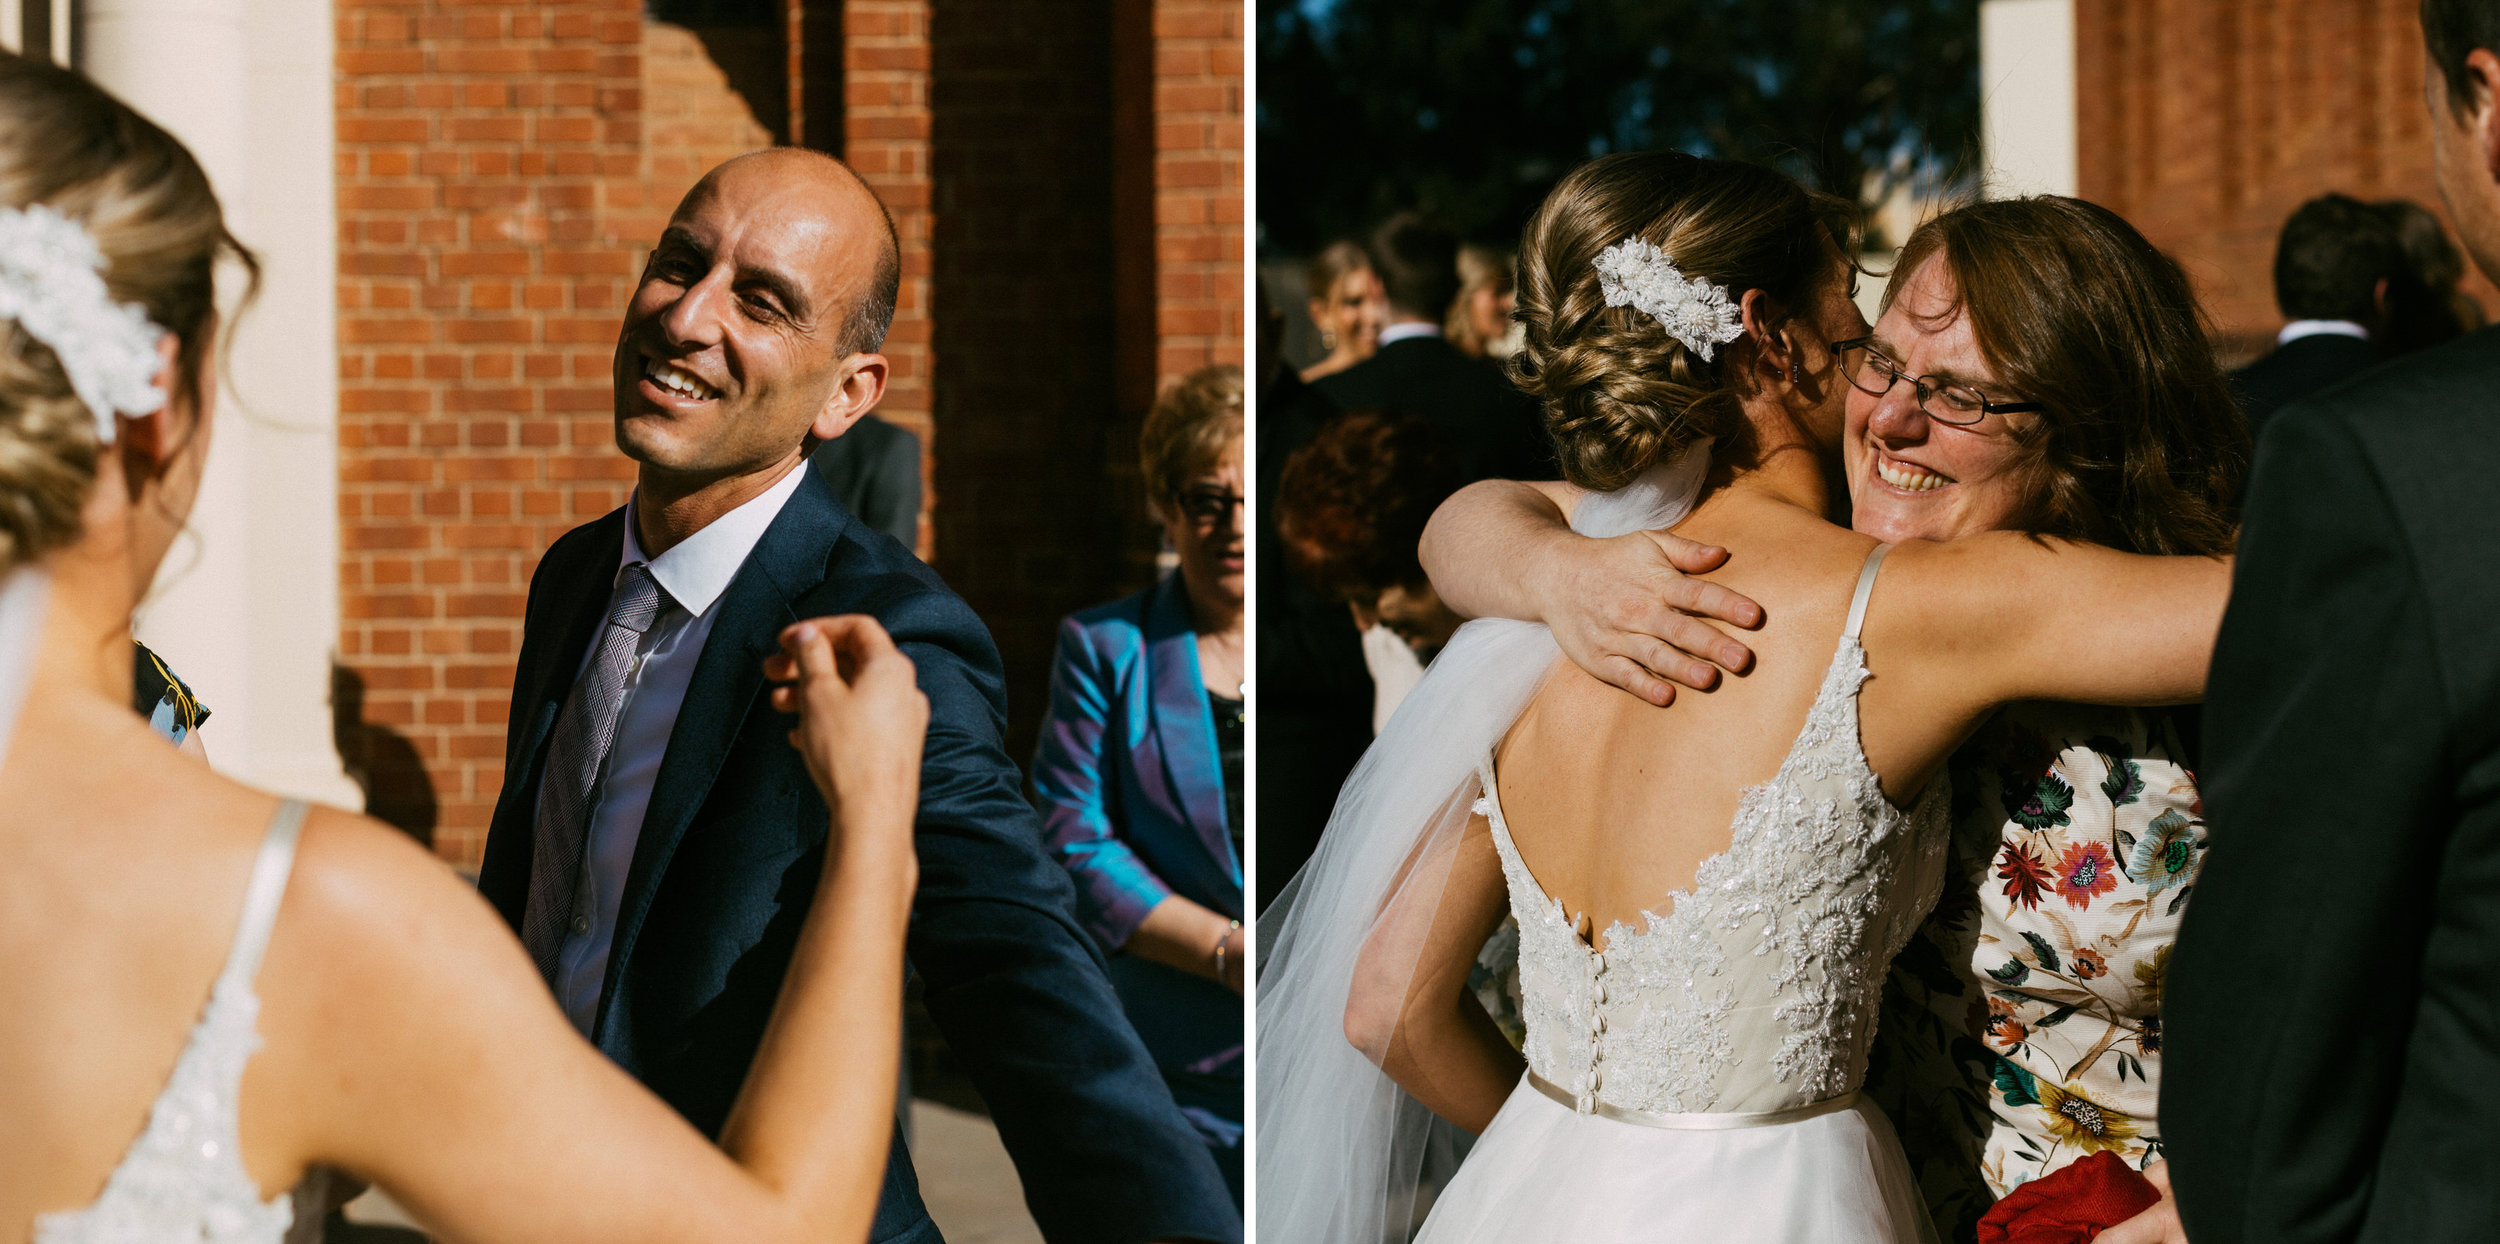 Adelaide Wedding 2019 080.jpg